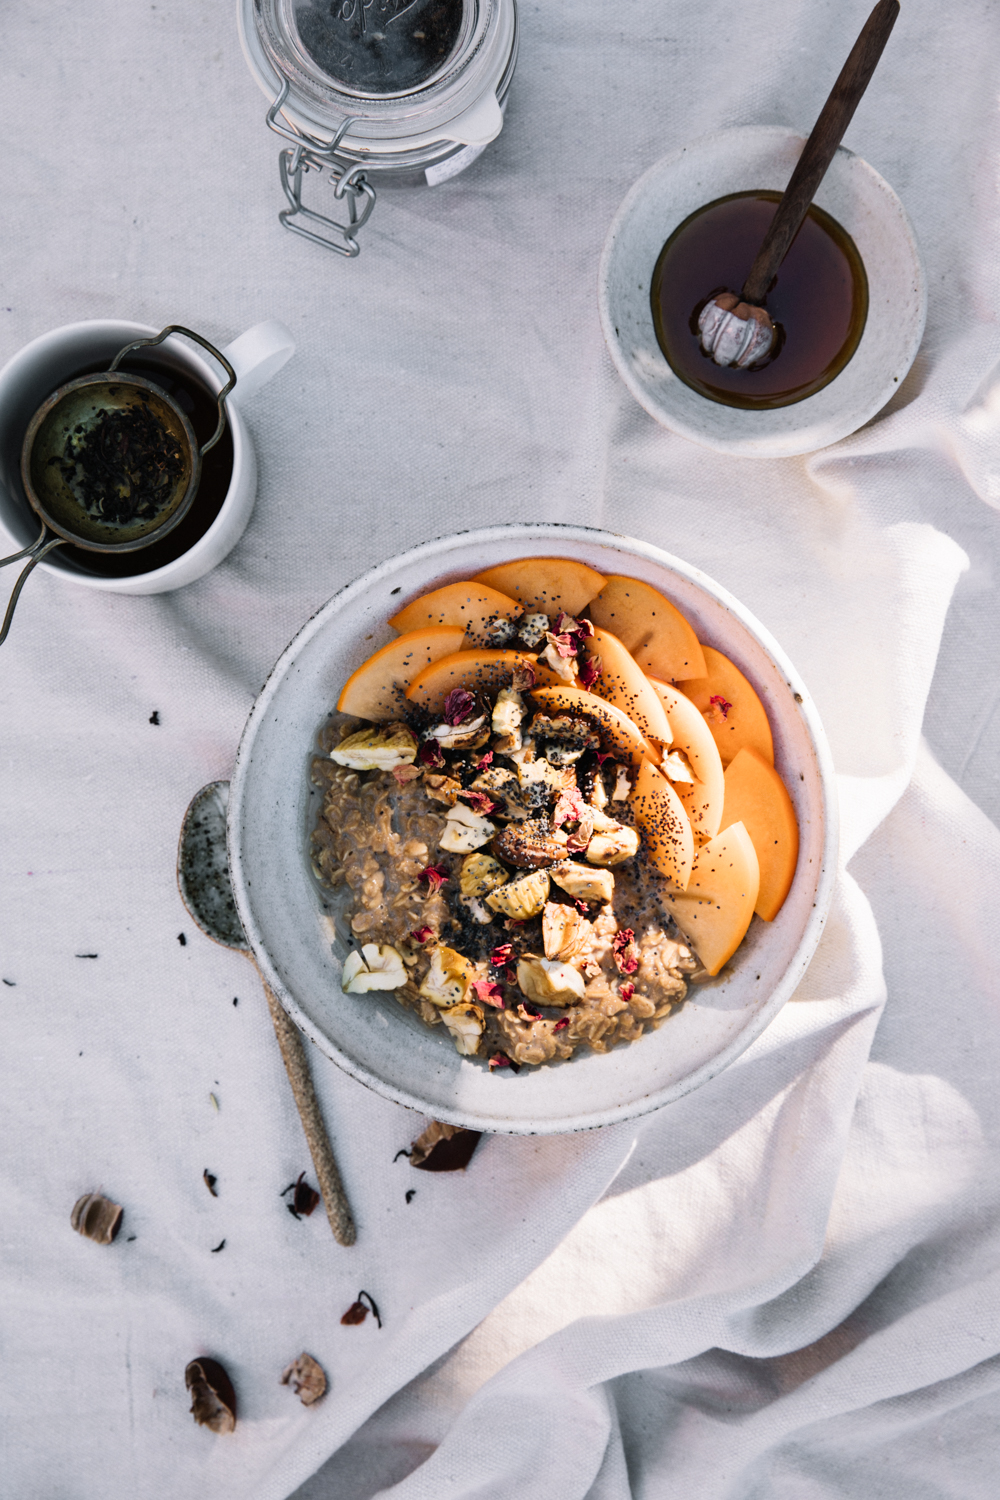 Chai Spiced Porridge with Roasted Chestnut, Persimmon & Rose⎜The Botanical Kitchen